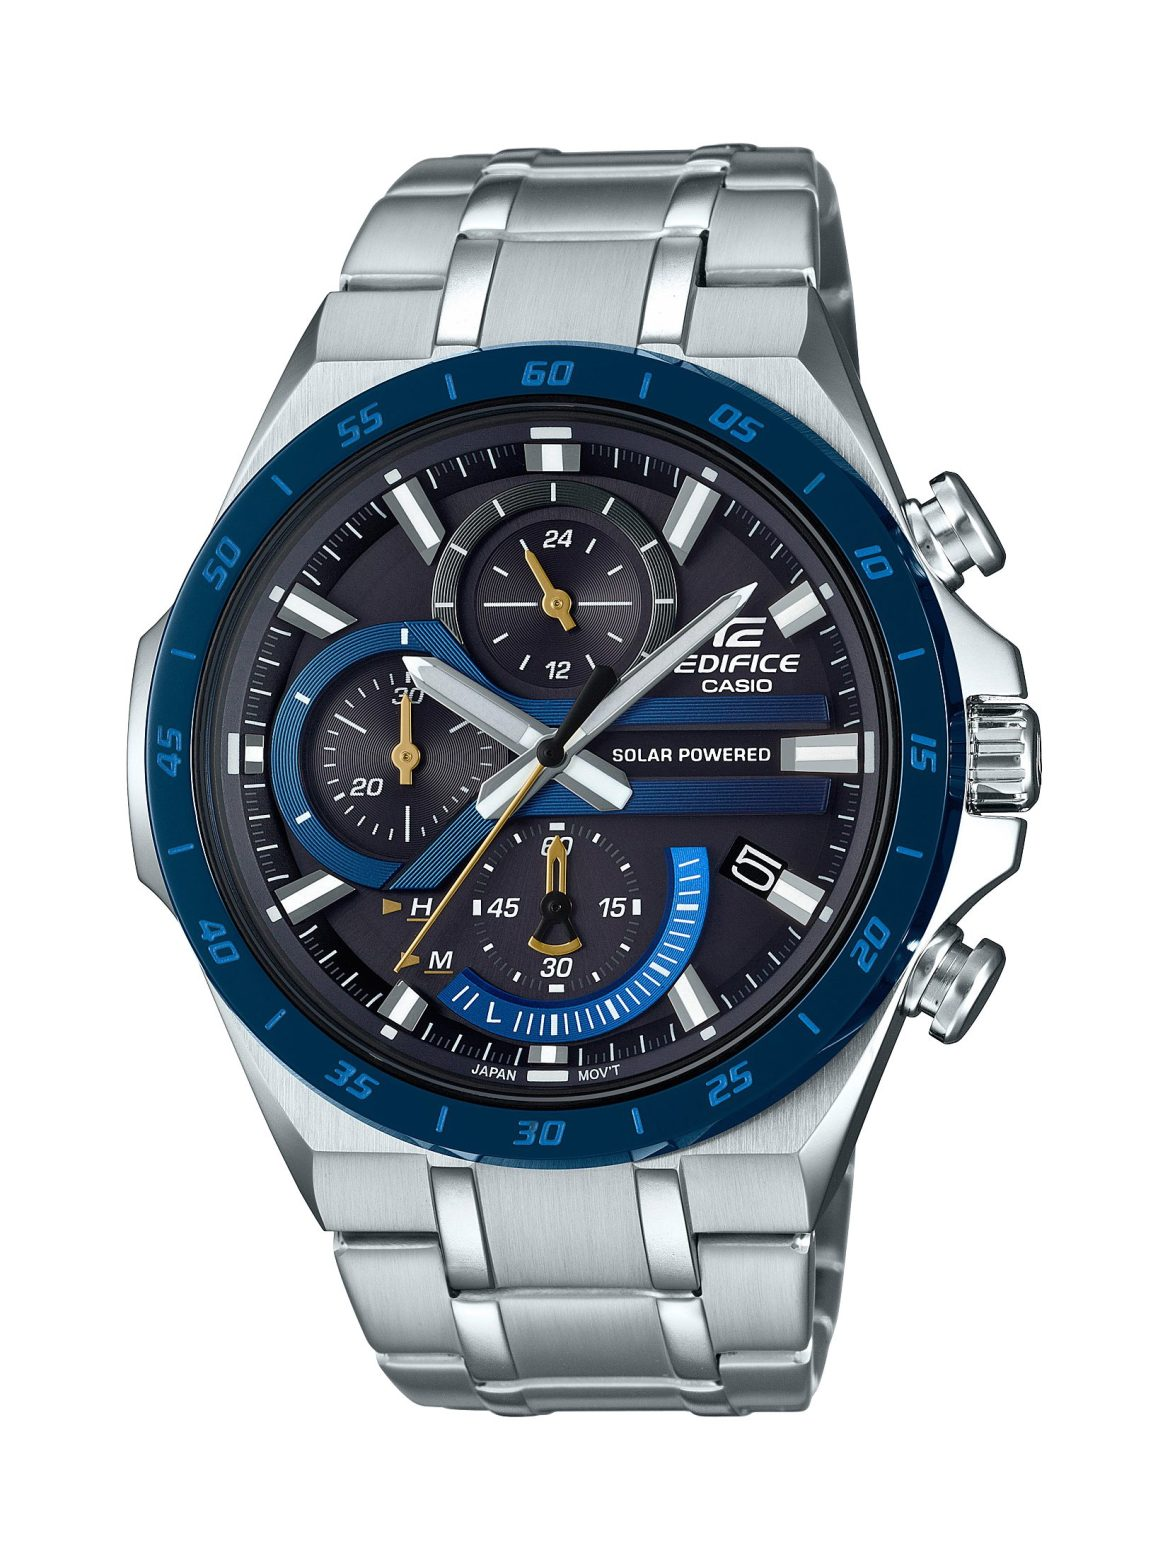 A roundup of some recent Casio Edifice releases